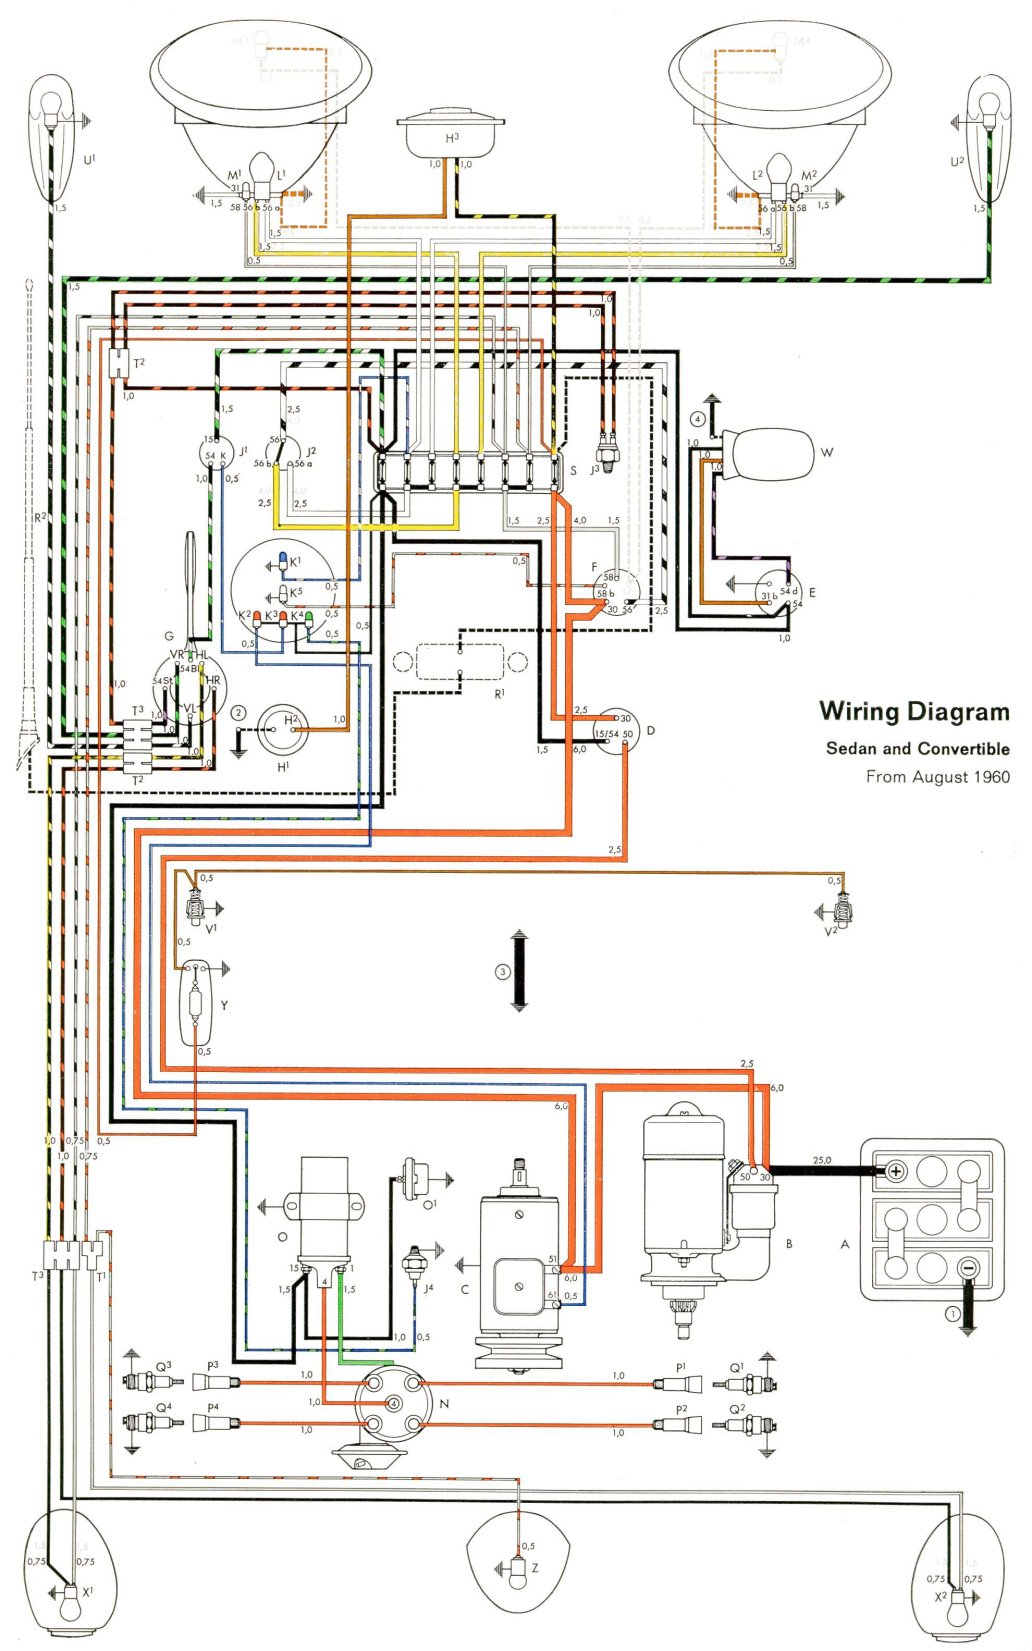 bug_61 1961 beetle wiring diagram thegoldenbug com vw buggy wiring diagram at soozxer.org